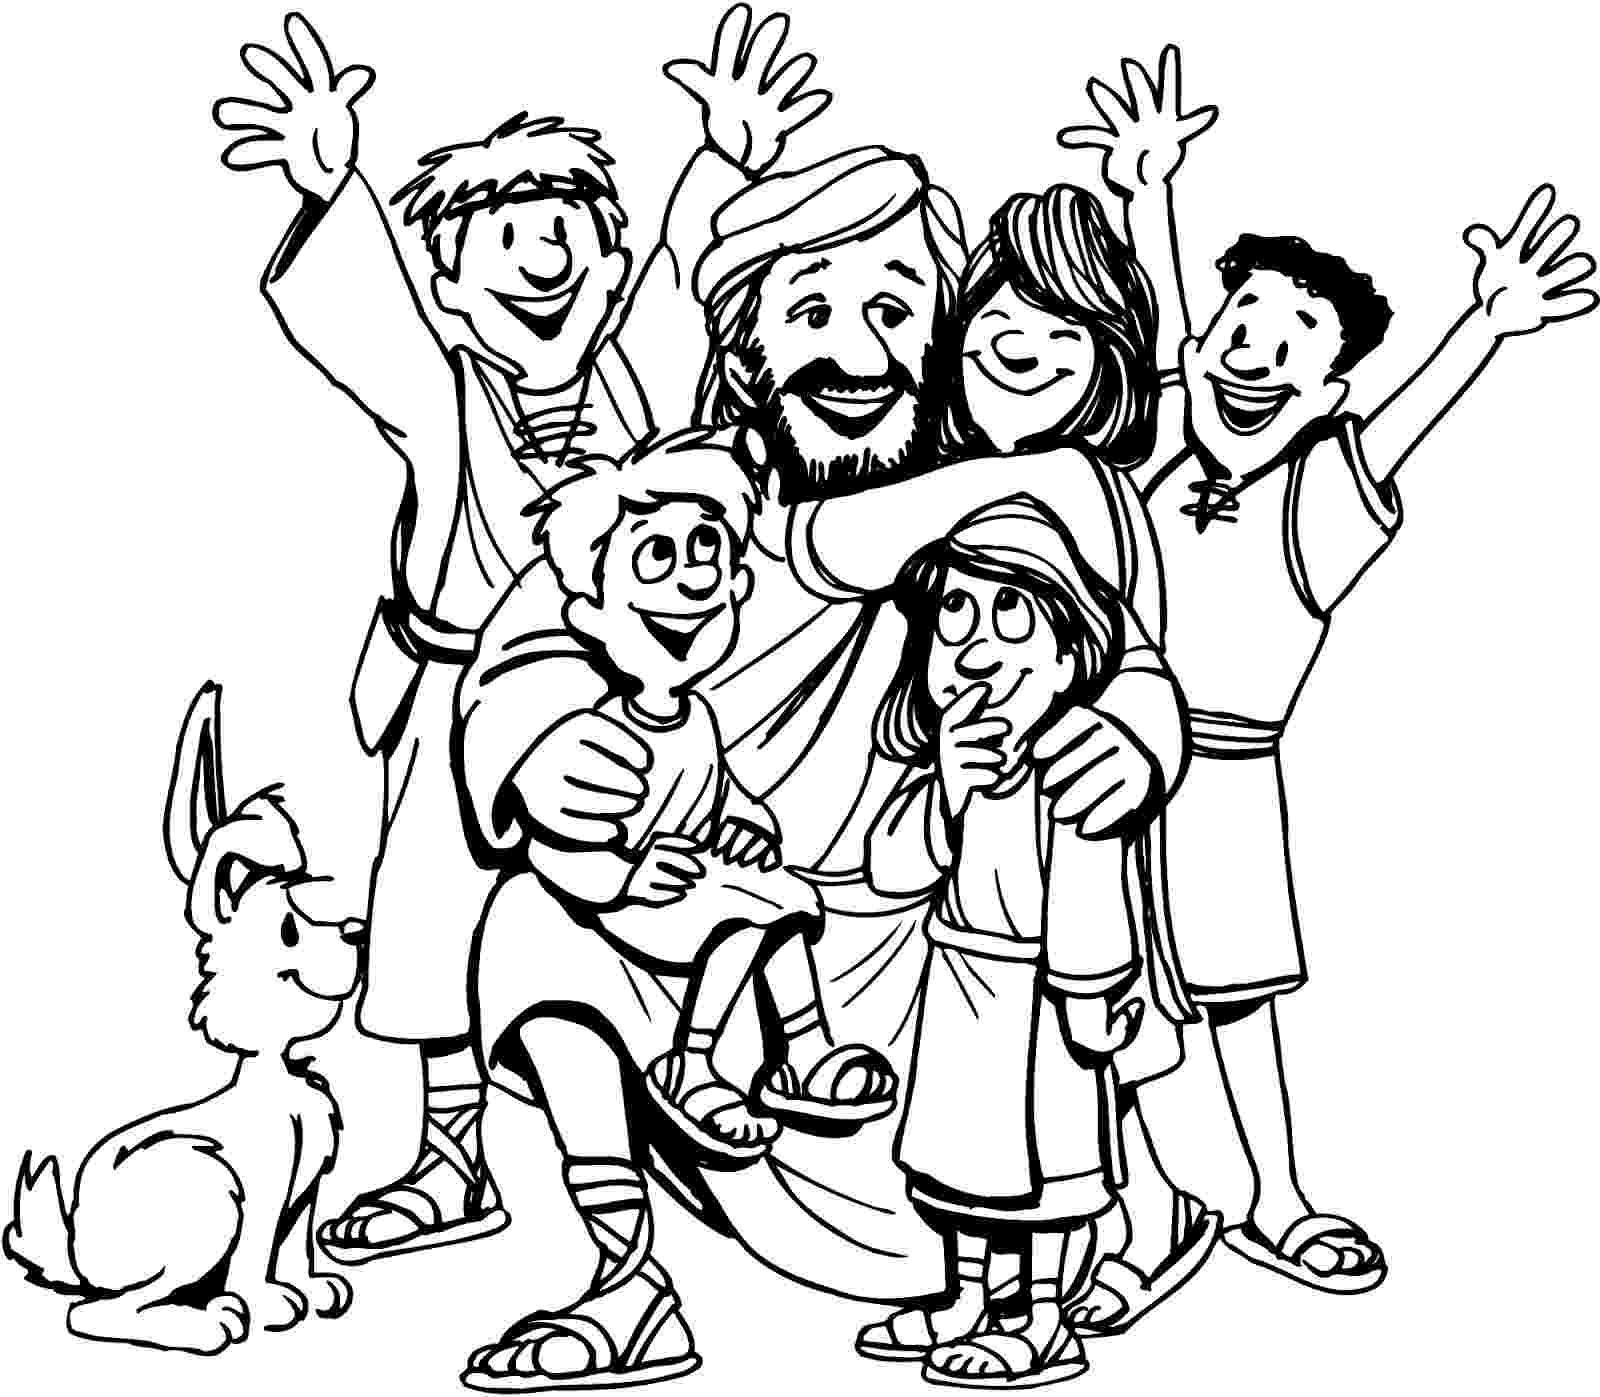 jesus and the children coloring page melonheadz lds illustrating april 2014 jesus page coloring the children and